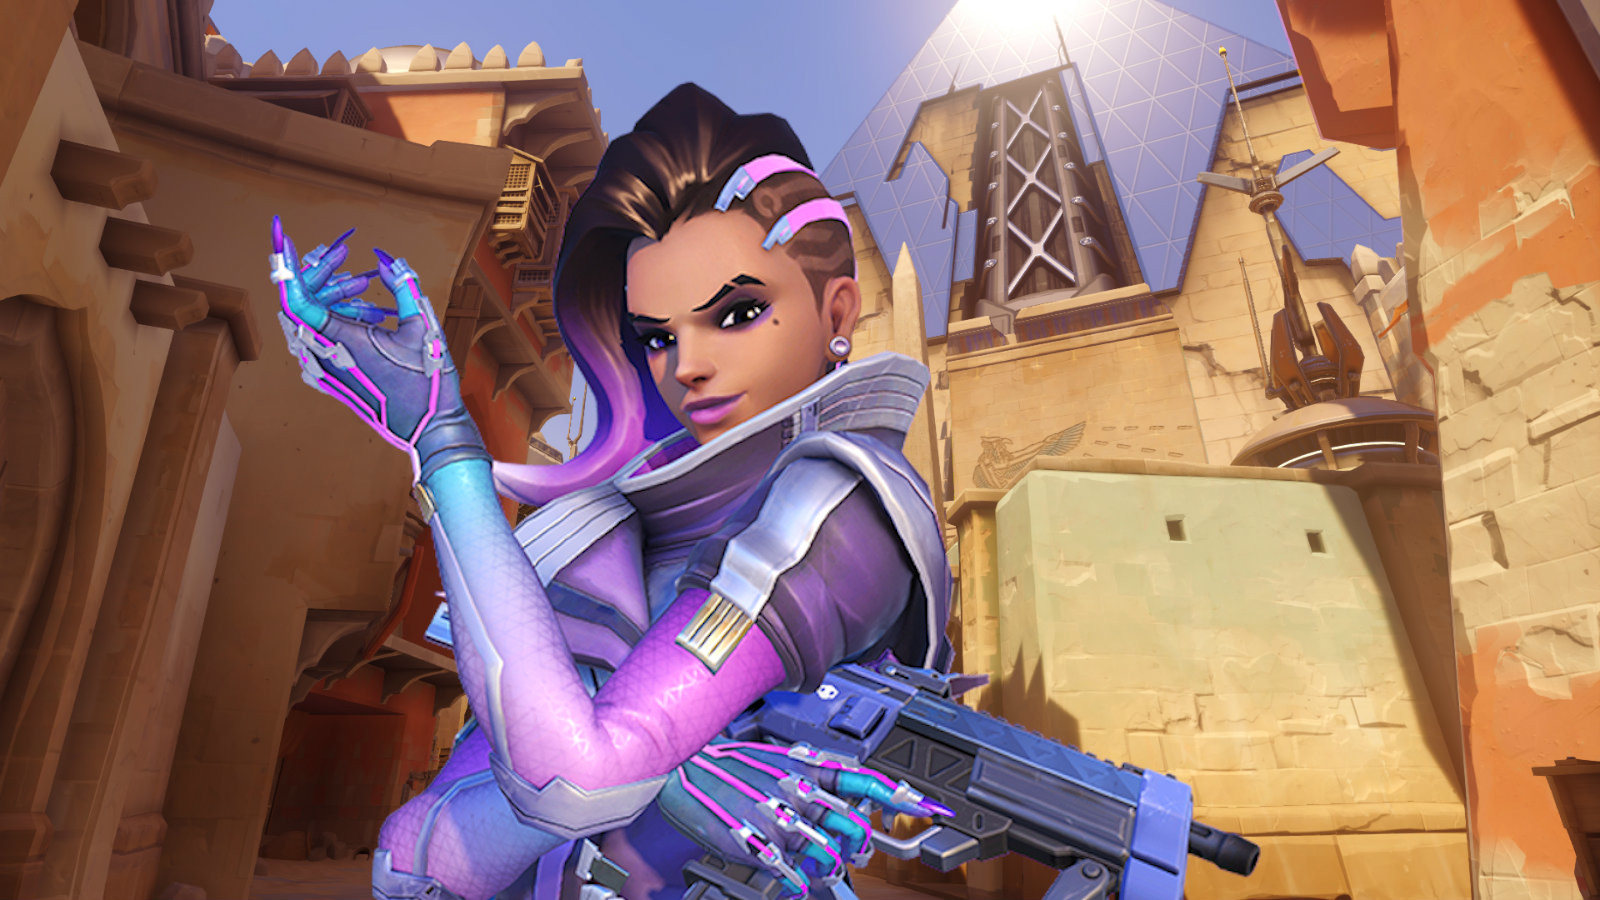 Sombra on Temple of Anubis in Overwatch